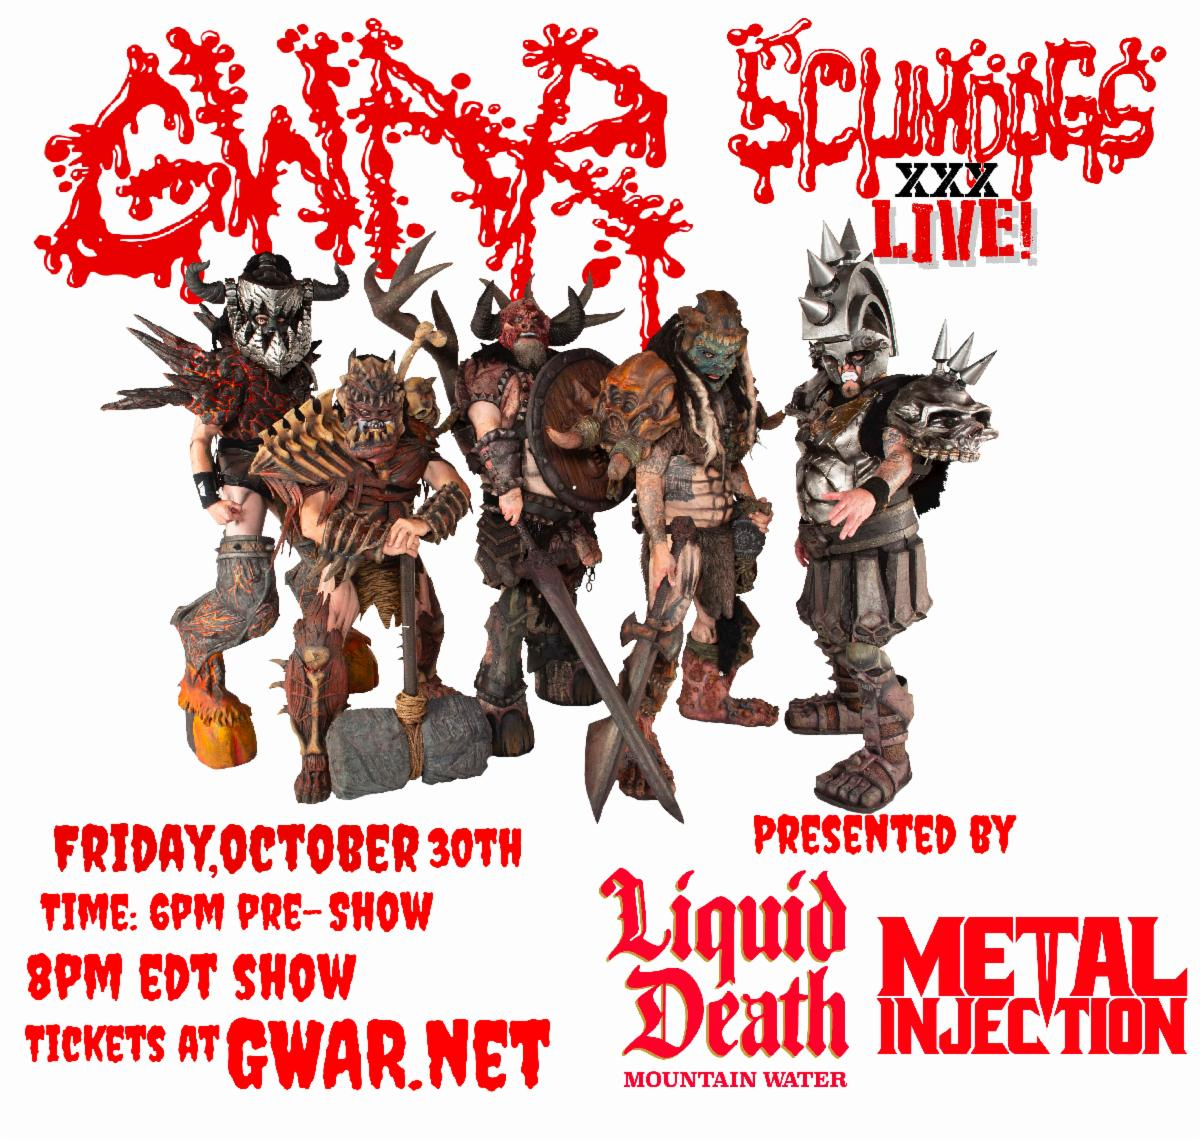 """GWAR Announces """"Scumdogs XXX Live"""" Presented by Liquid Death and Metal Injection"""